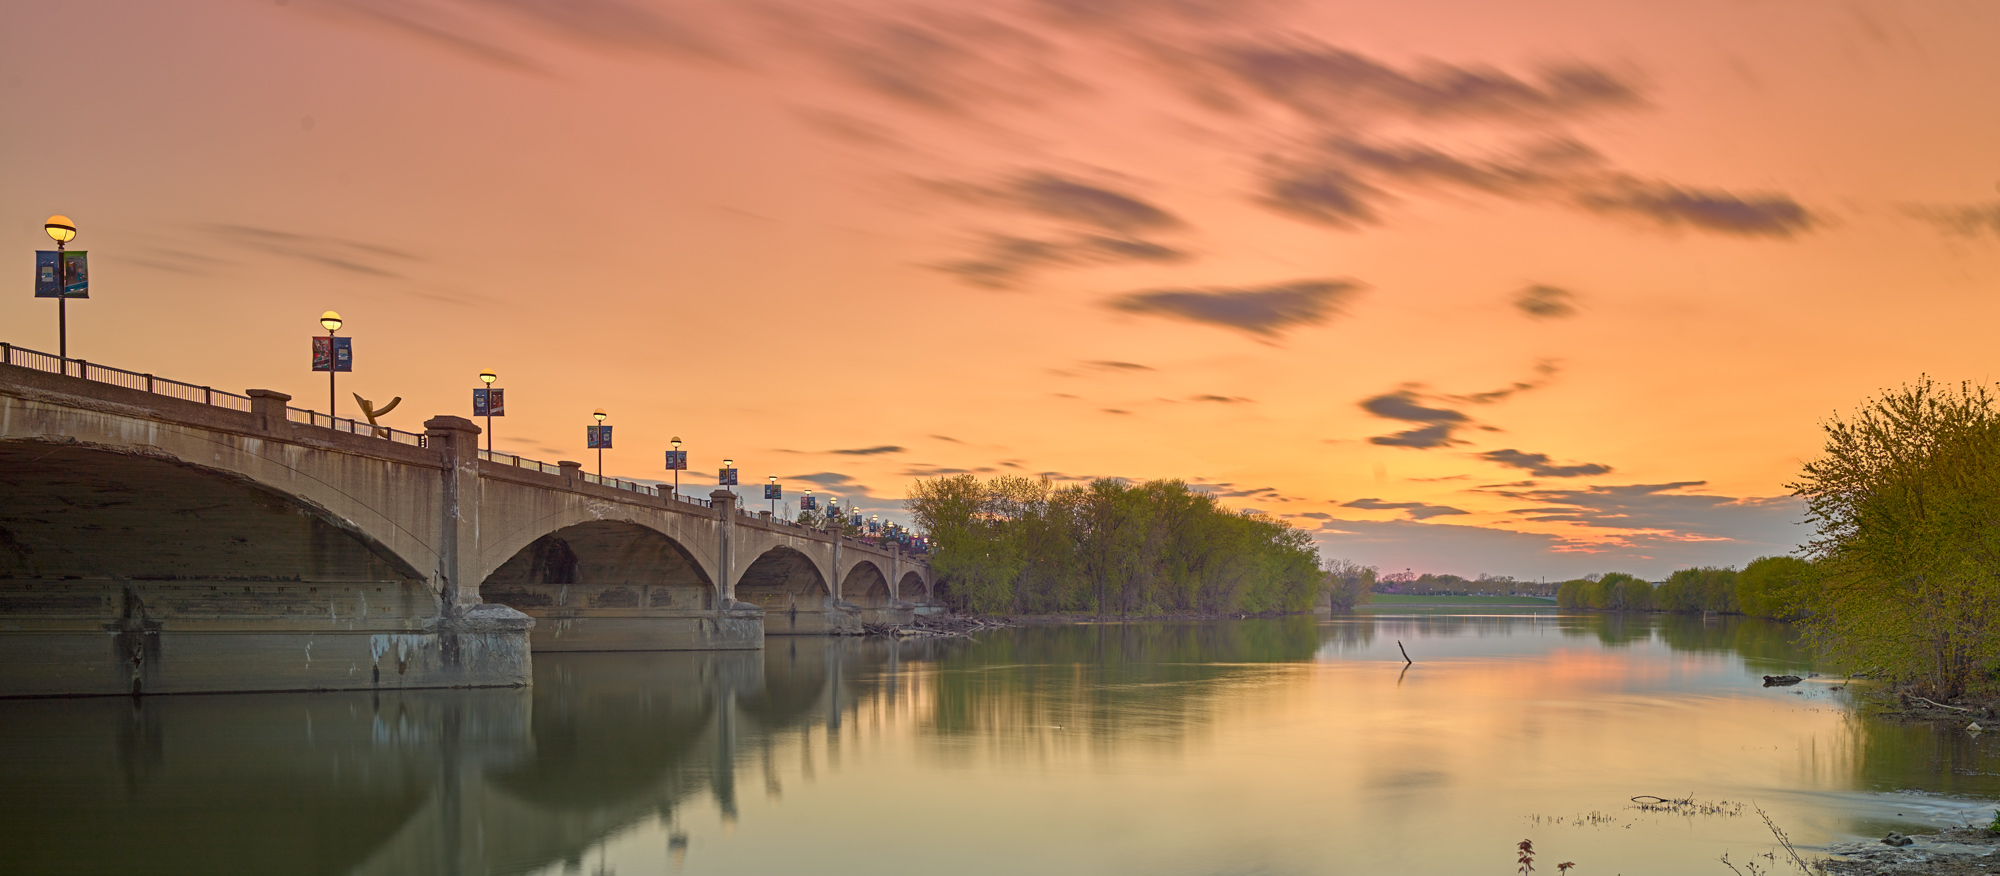 The White River Indianapolis, Photo by Michael Durr